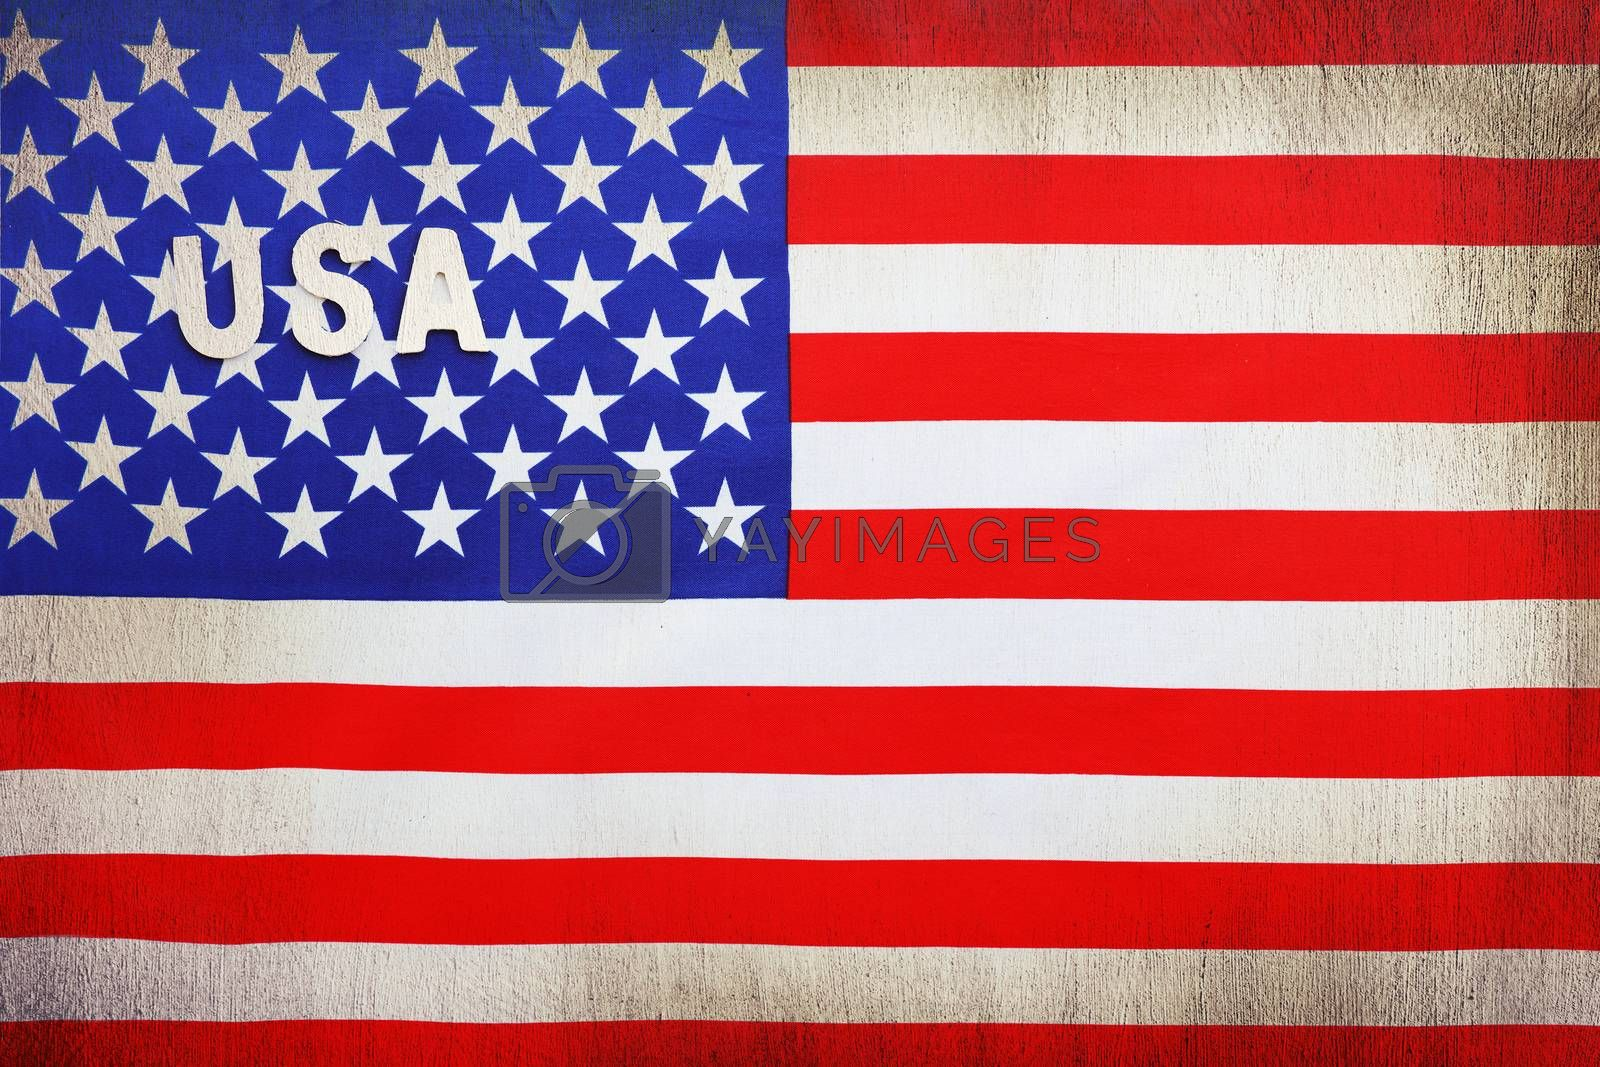 American flag, grunge style background with text space, national symbol, 4th of July, Independence day of America